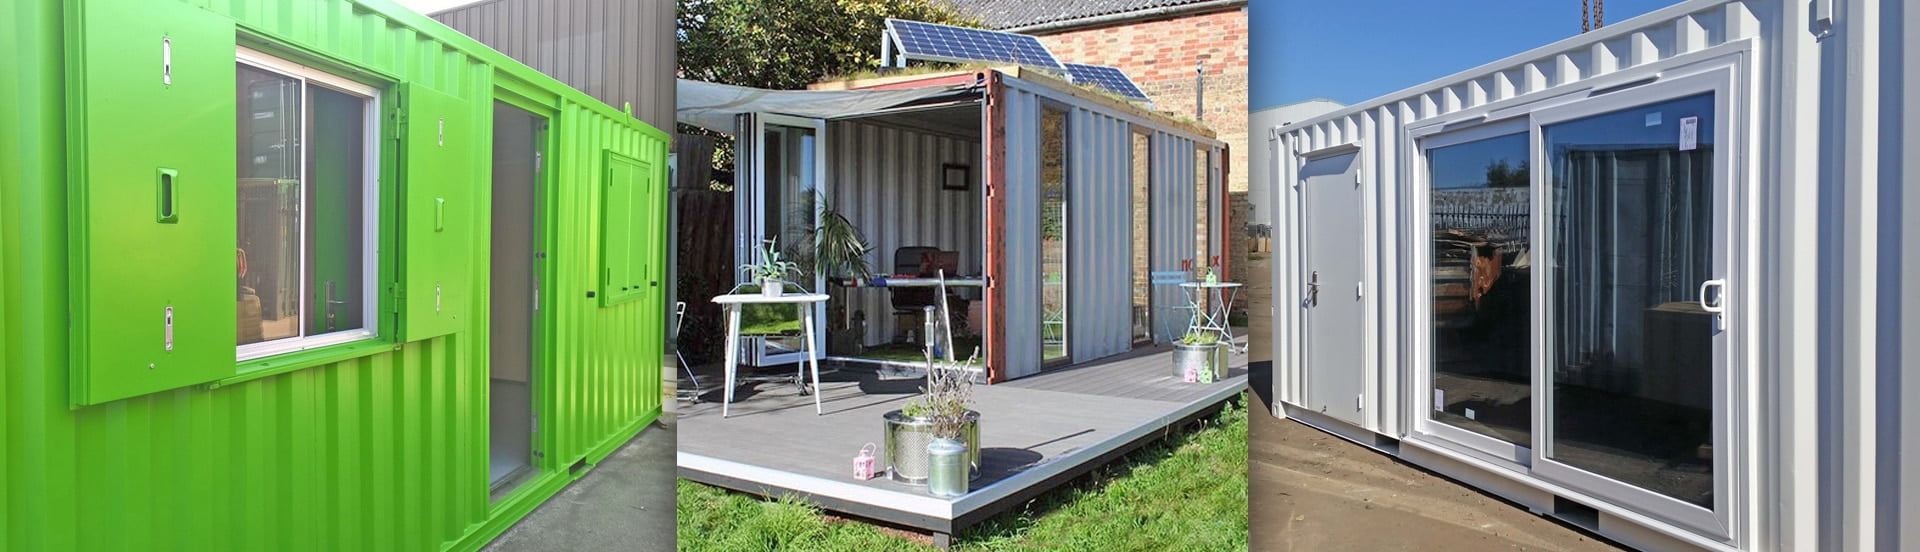 Garden Office Containers